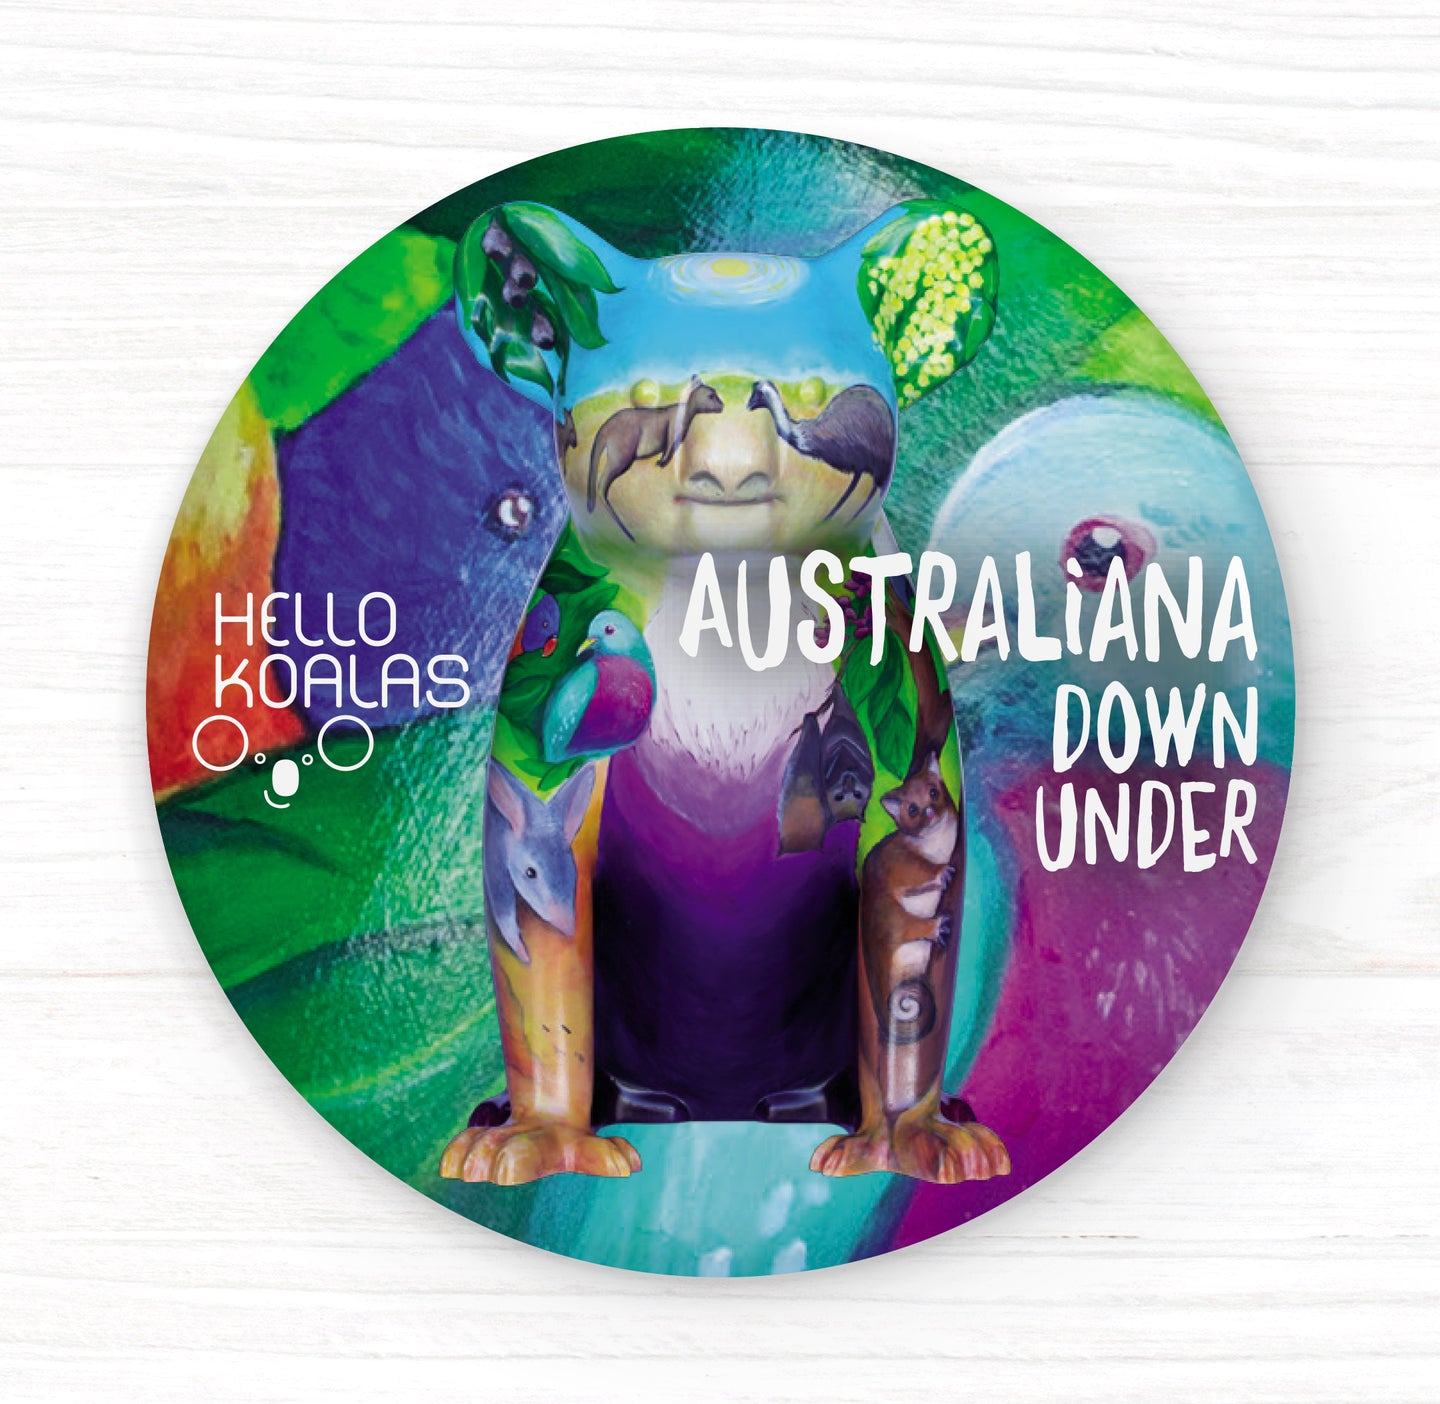 Hello Koalas Australiana Down Under Magnet